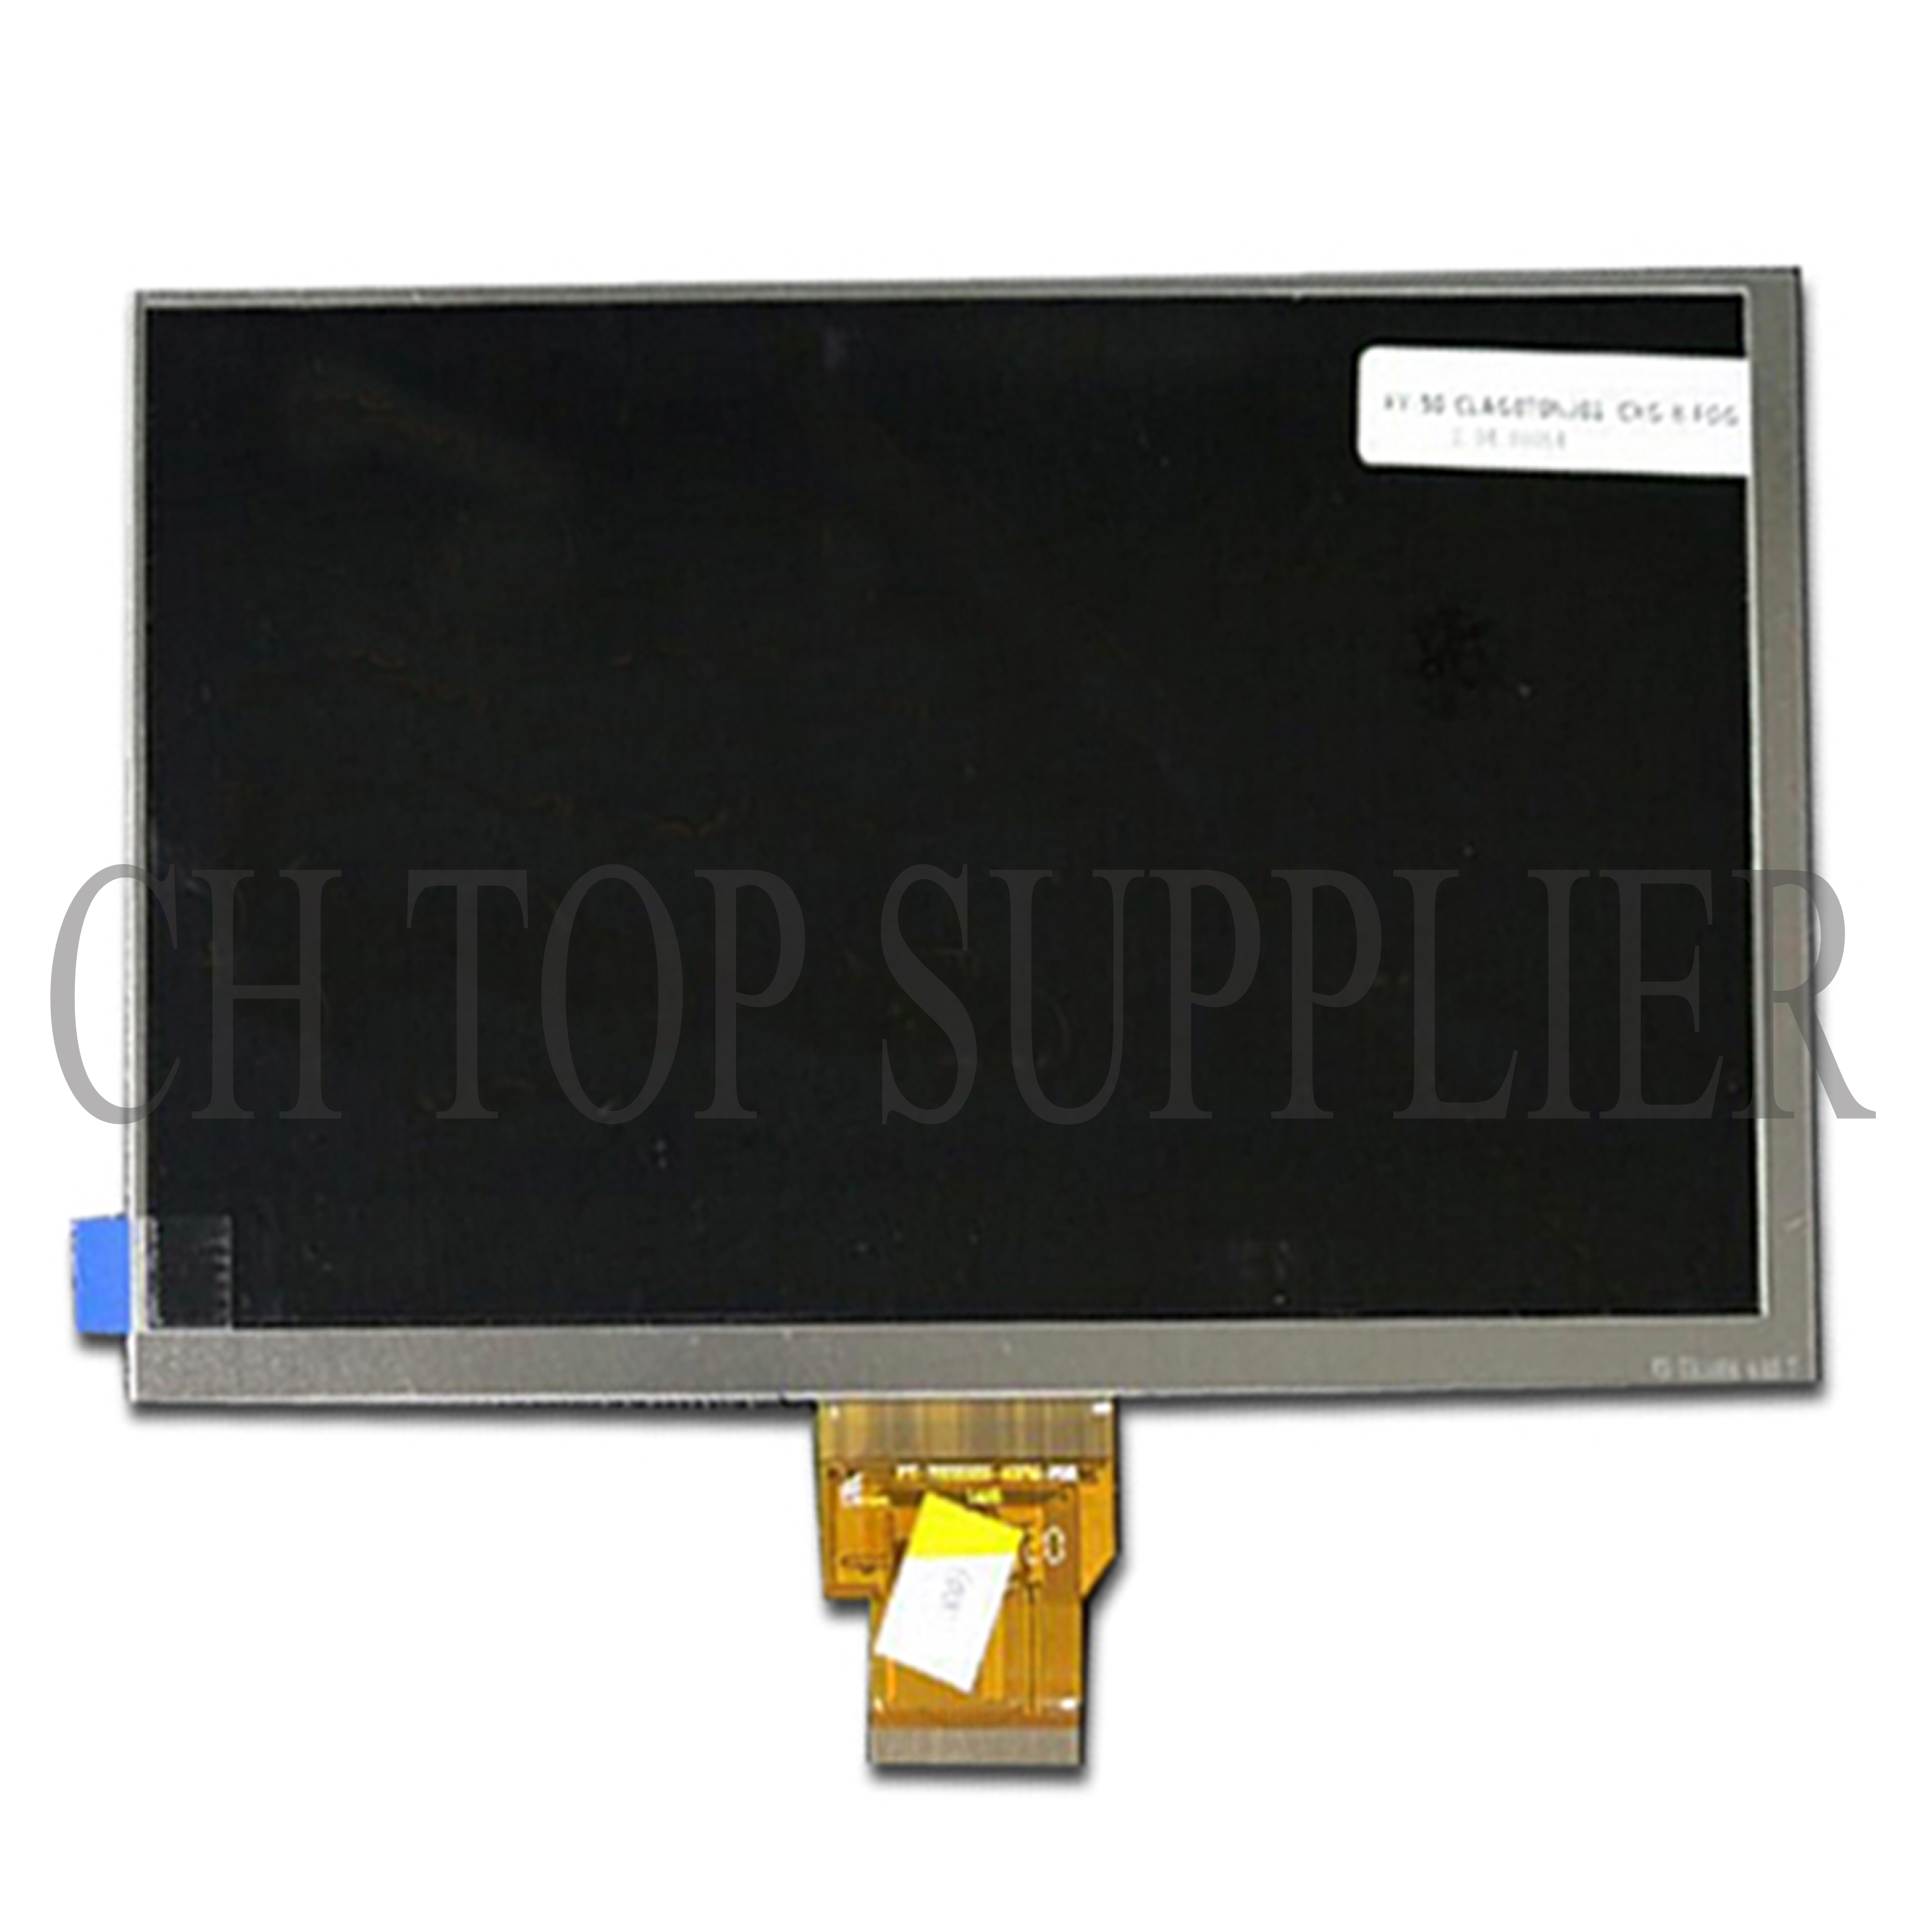 New LCD display matrix For 7 KR070IGOT-1154-A Tablet inner LCD Screen Panel Module Replacement Free Shipping genuine 12 laptop matrix for macbook a1534 lcd led replacement screen display brand new 2015 2016 years